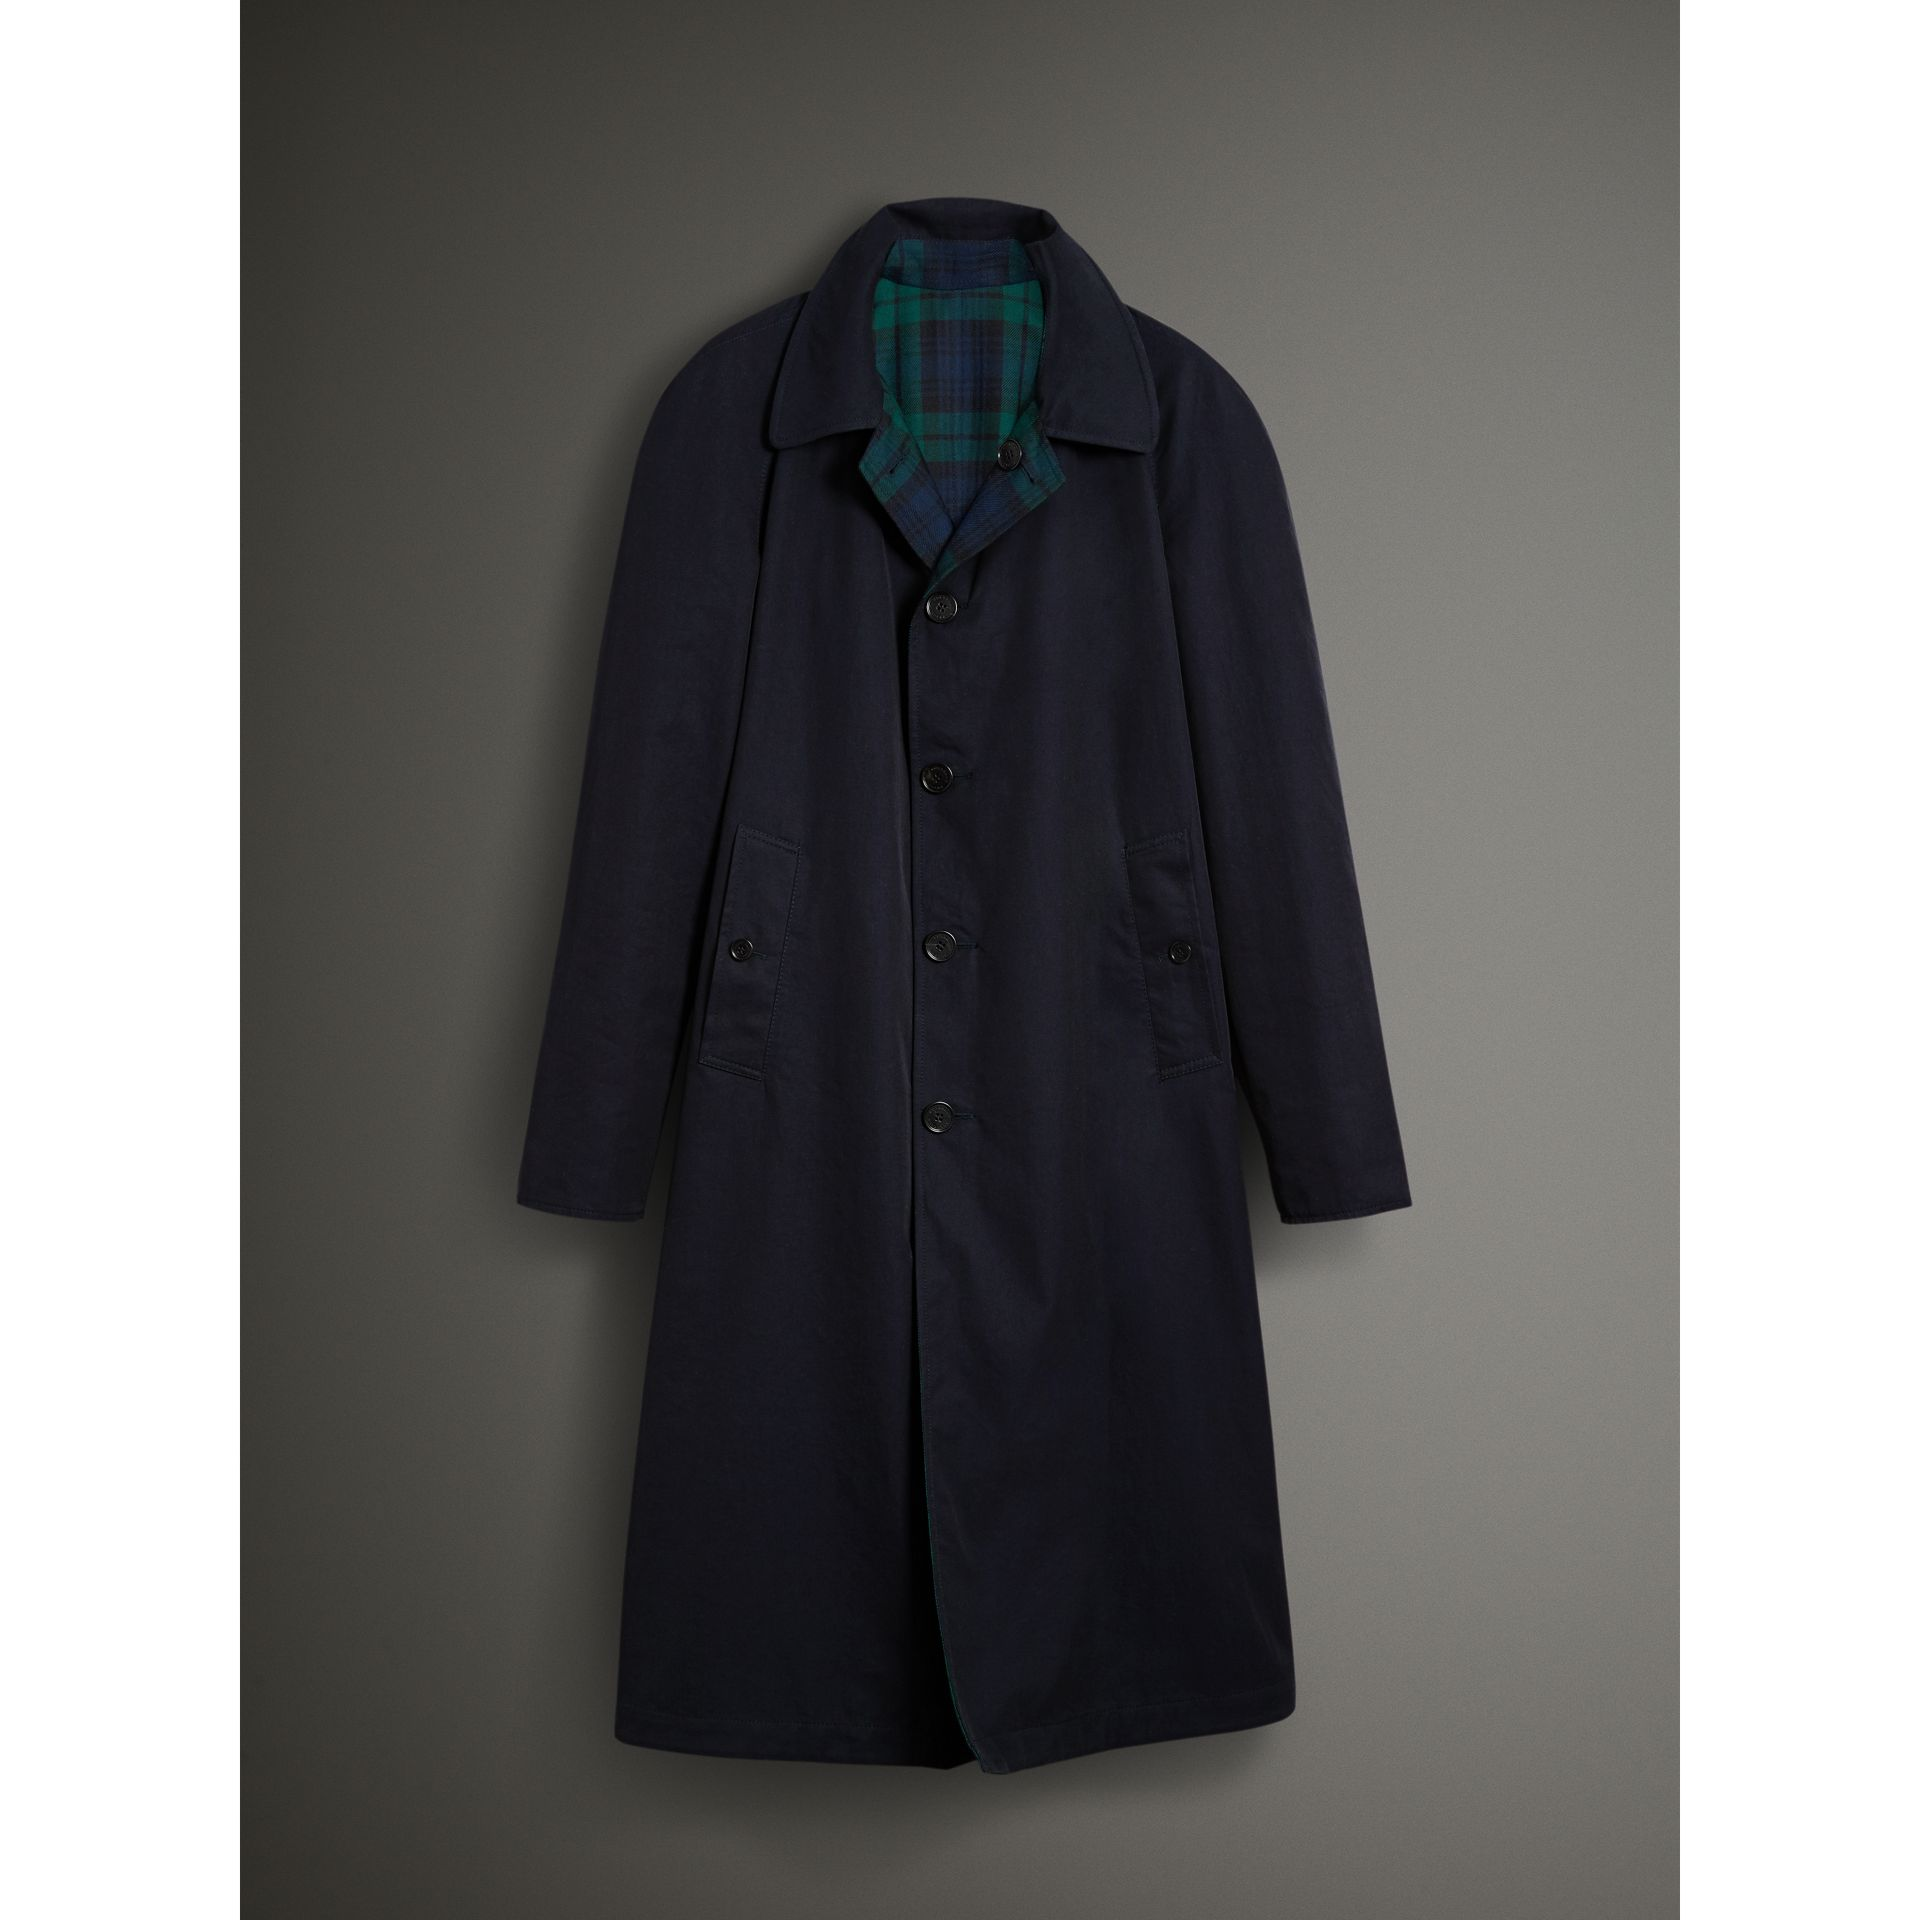 Reversible Tartan Wool and Cotton Gabardine Car Coat in Navy - Men | Burberry United States - gallery image 8